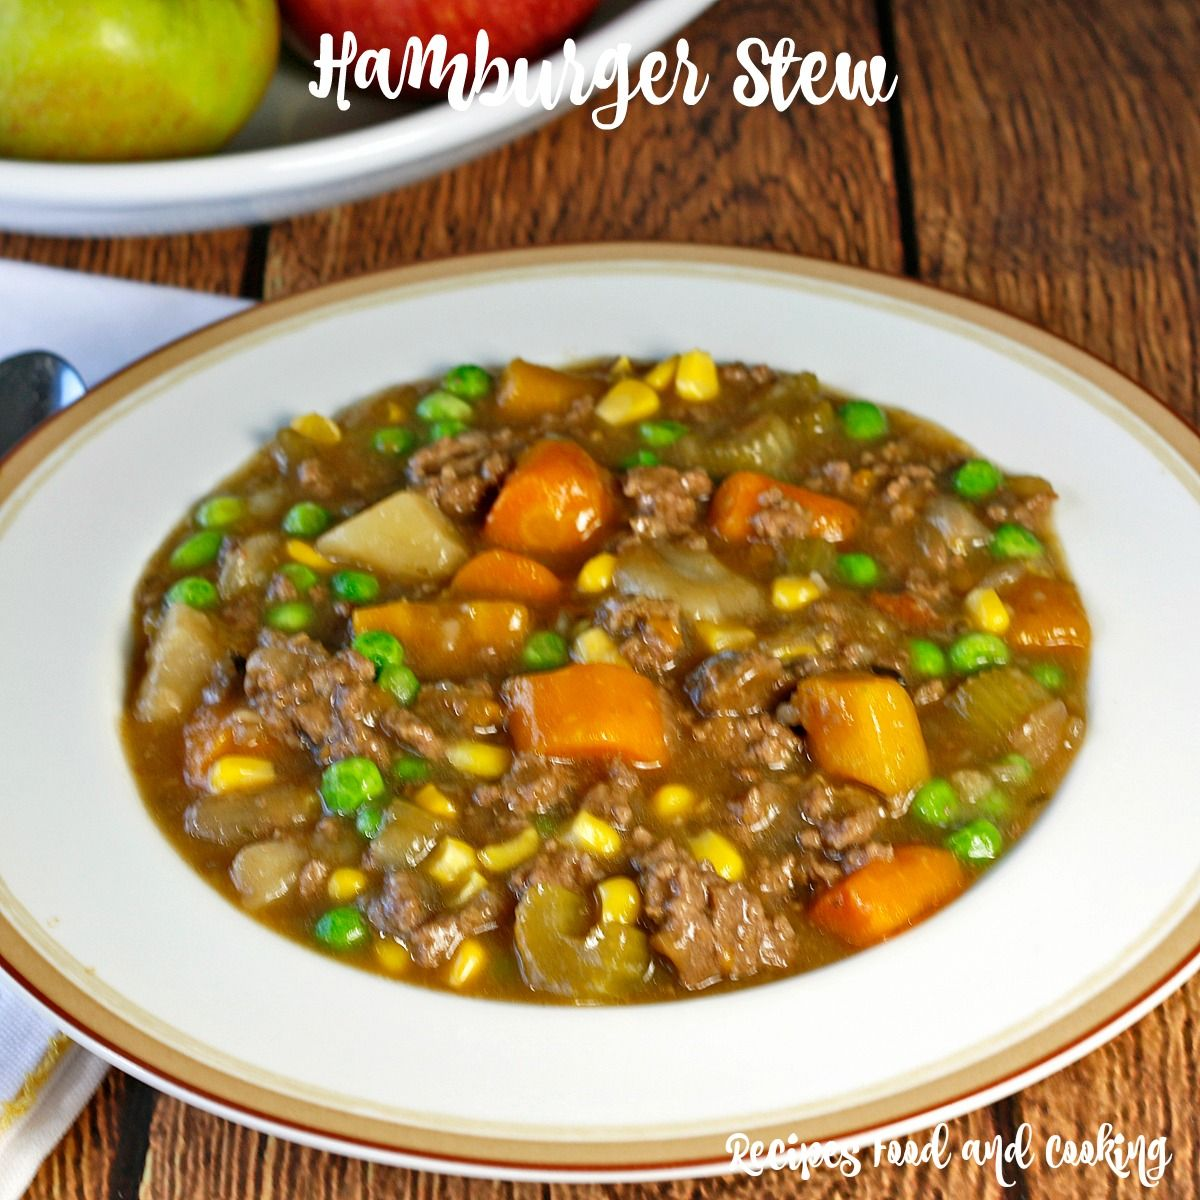 This Hearty And Delicious Beef Stew Is Made With Ground Beef Carrots Potatoes Celery Onions Corn And Peas Hamburger Stew Stew Recipes Tasty Beef Stew